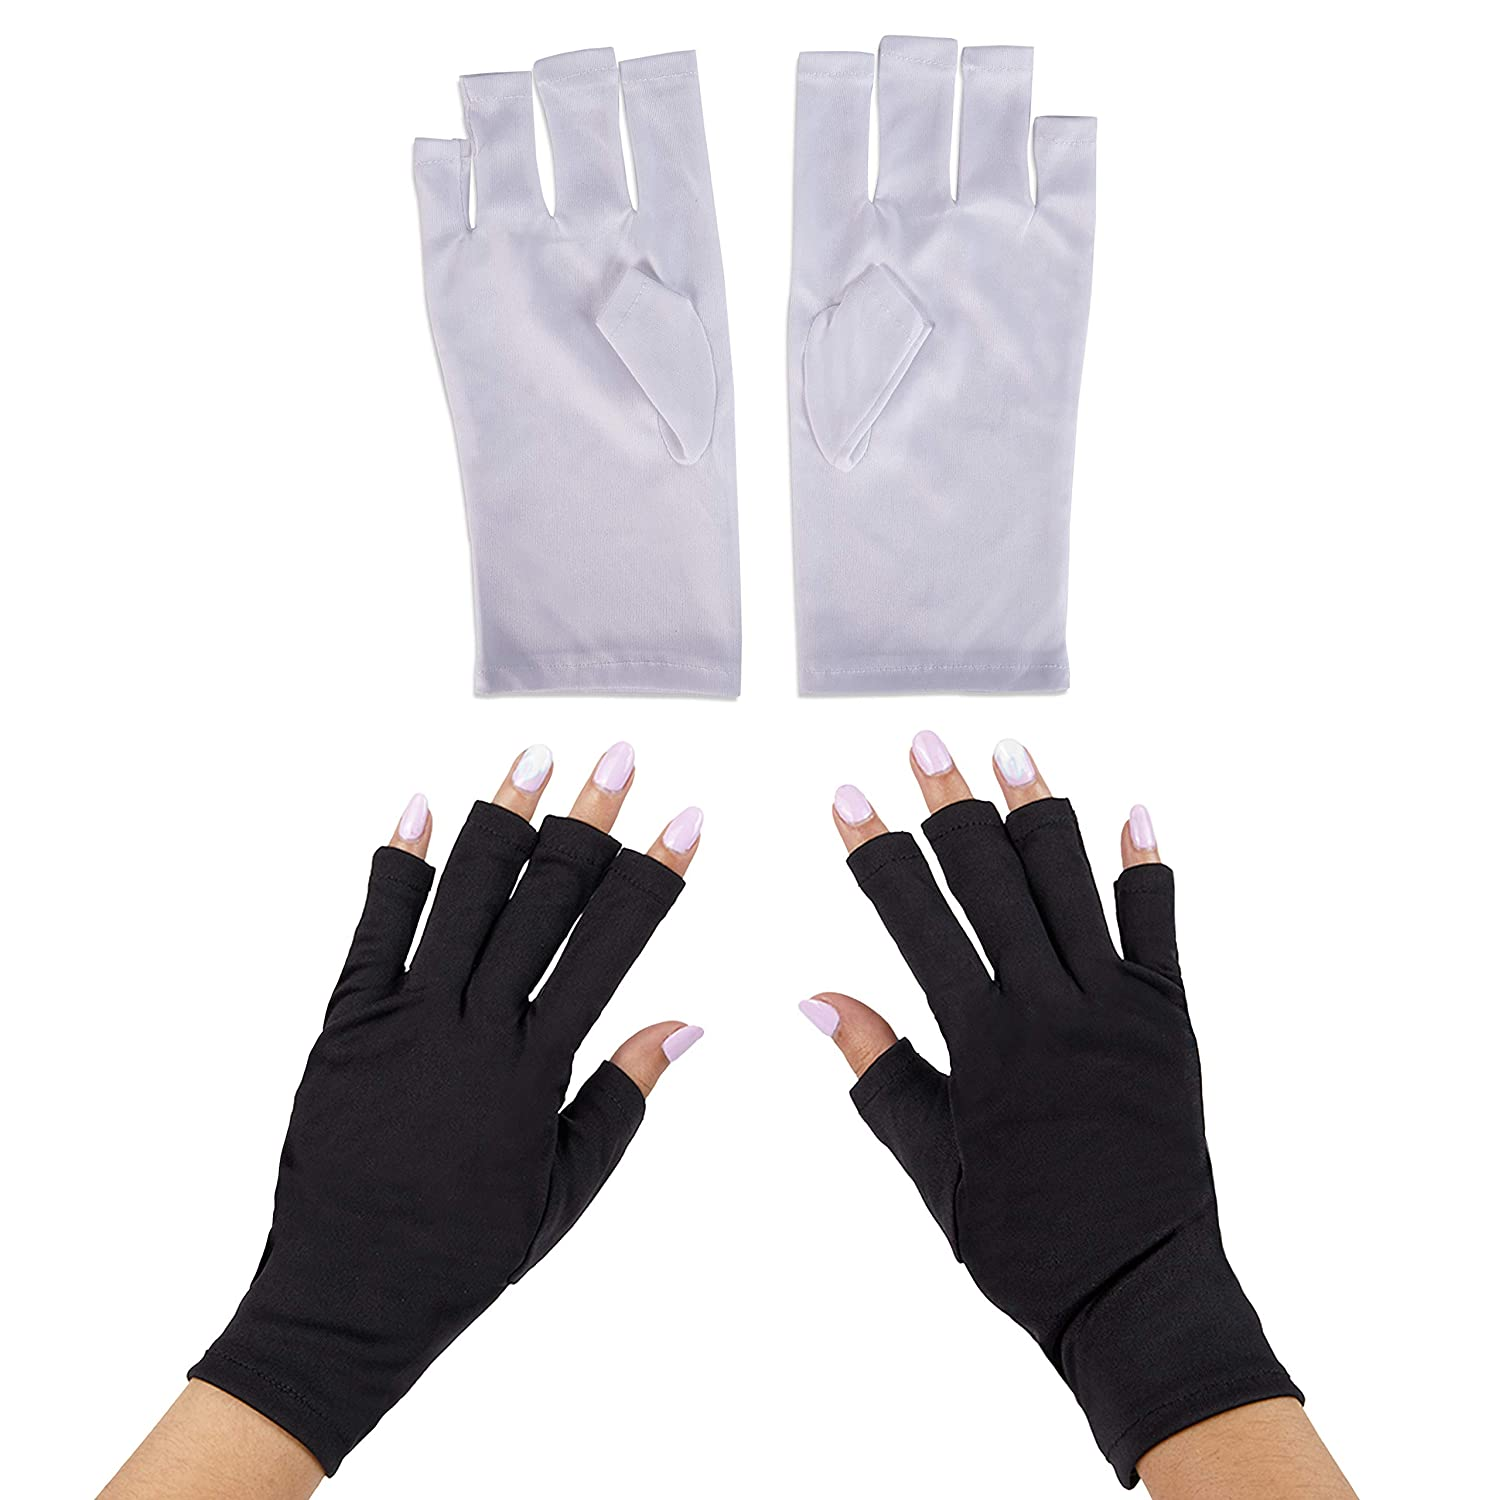 Fingerless UV Light Gloves for Gel Manicures, Sun Protection (2 Colors, 2 Pairs)